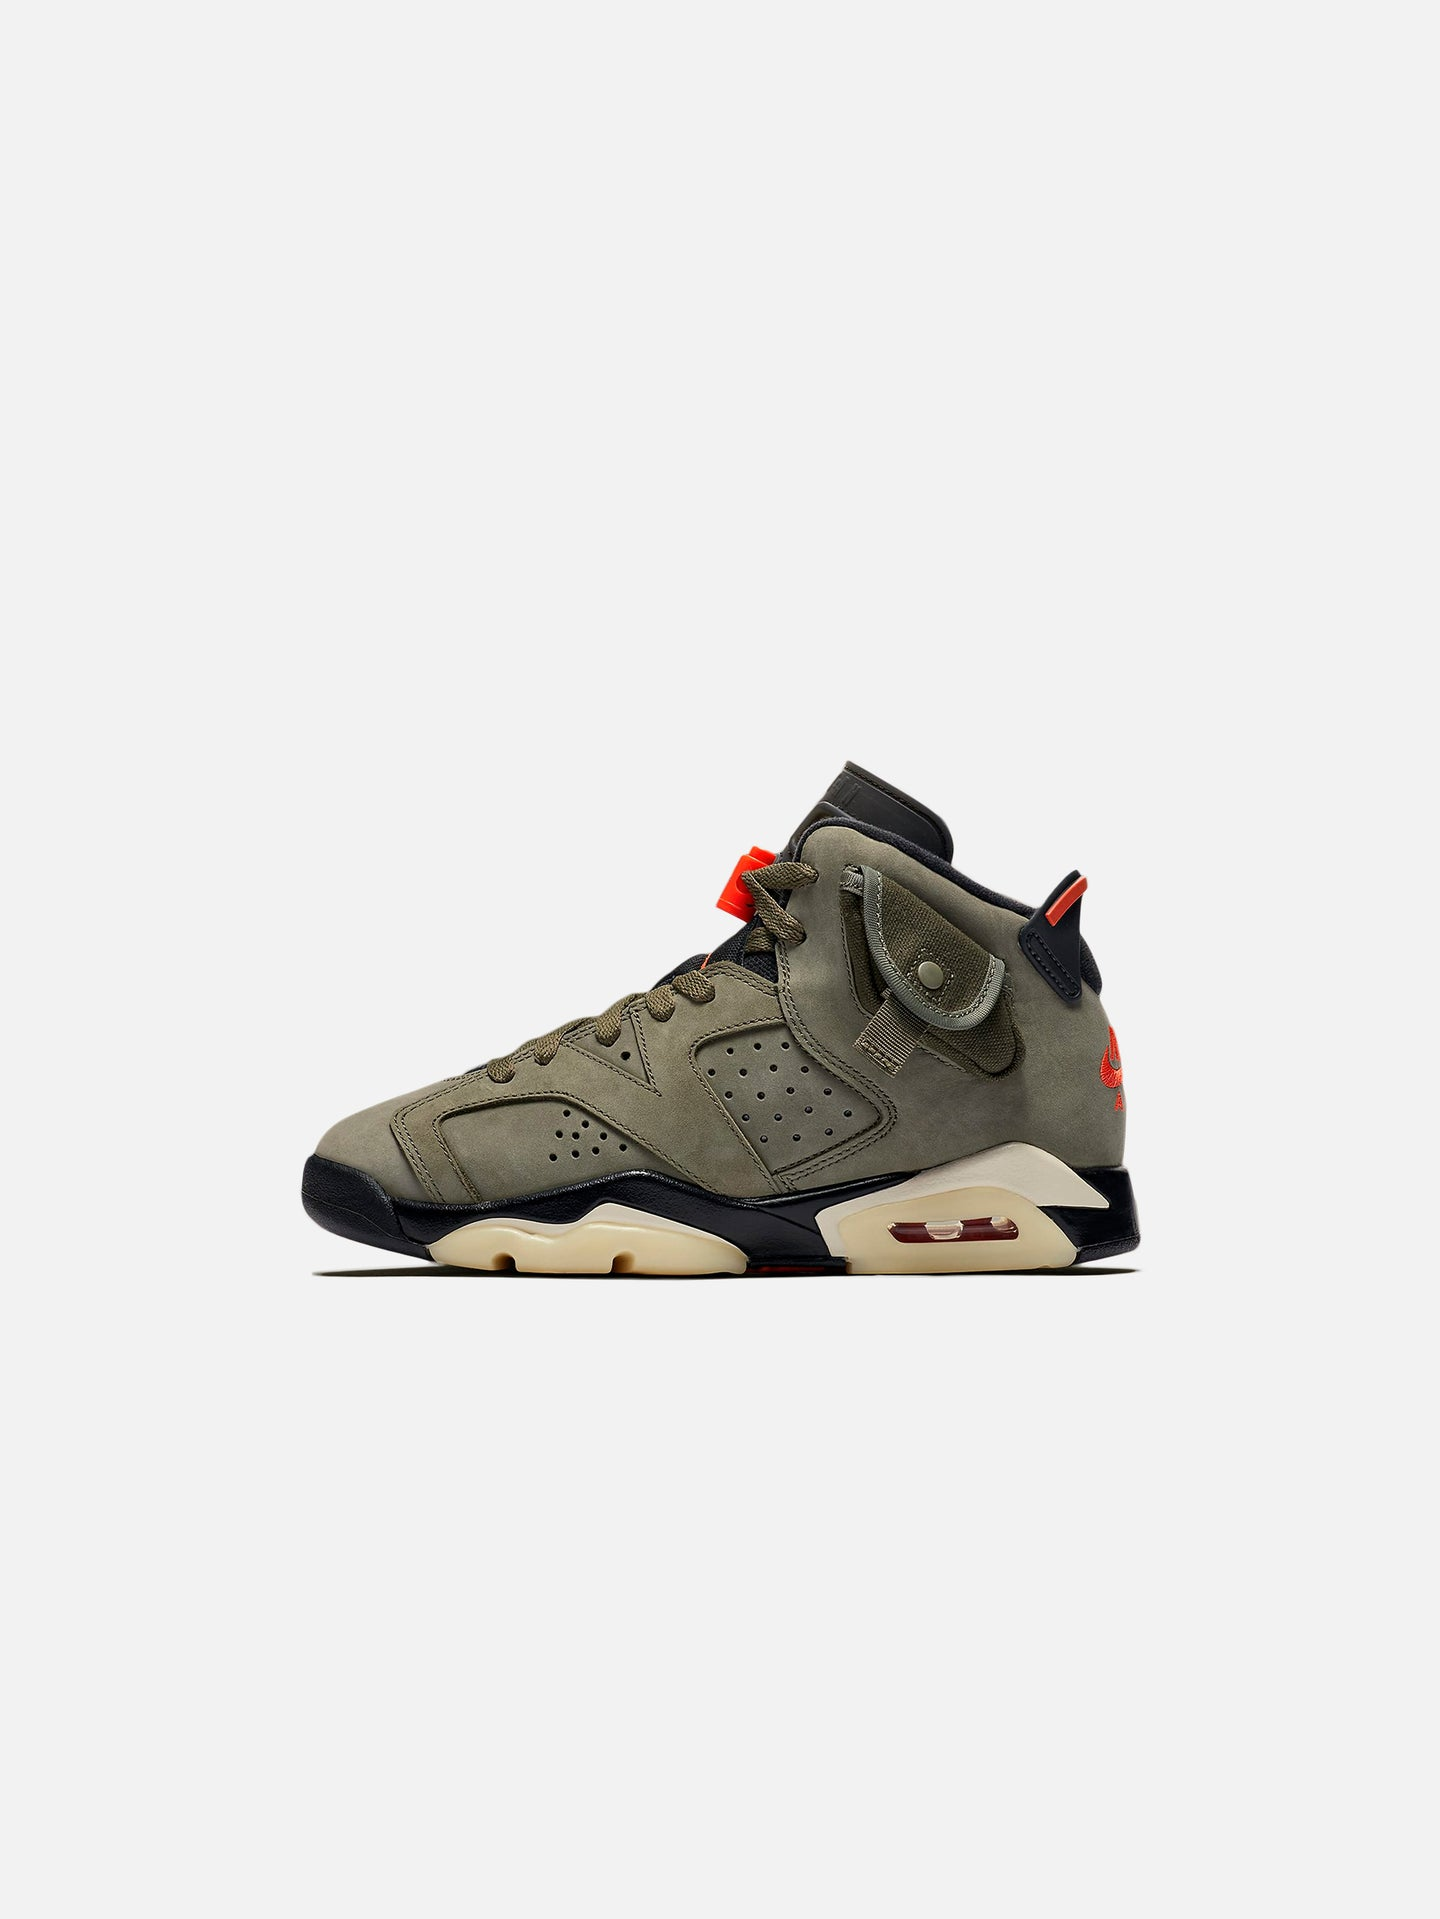 x TRAVIS SCOTT AIR JORDAN VI OG SP